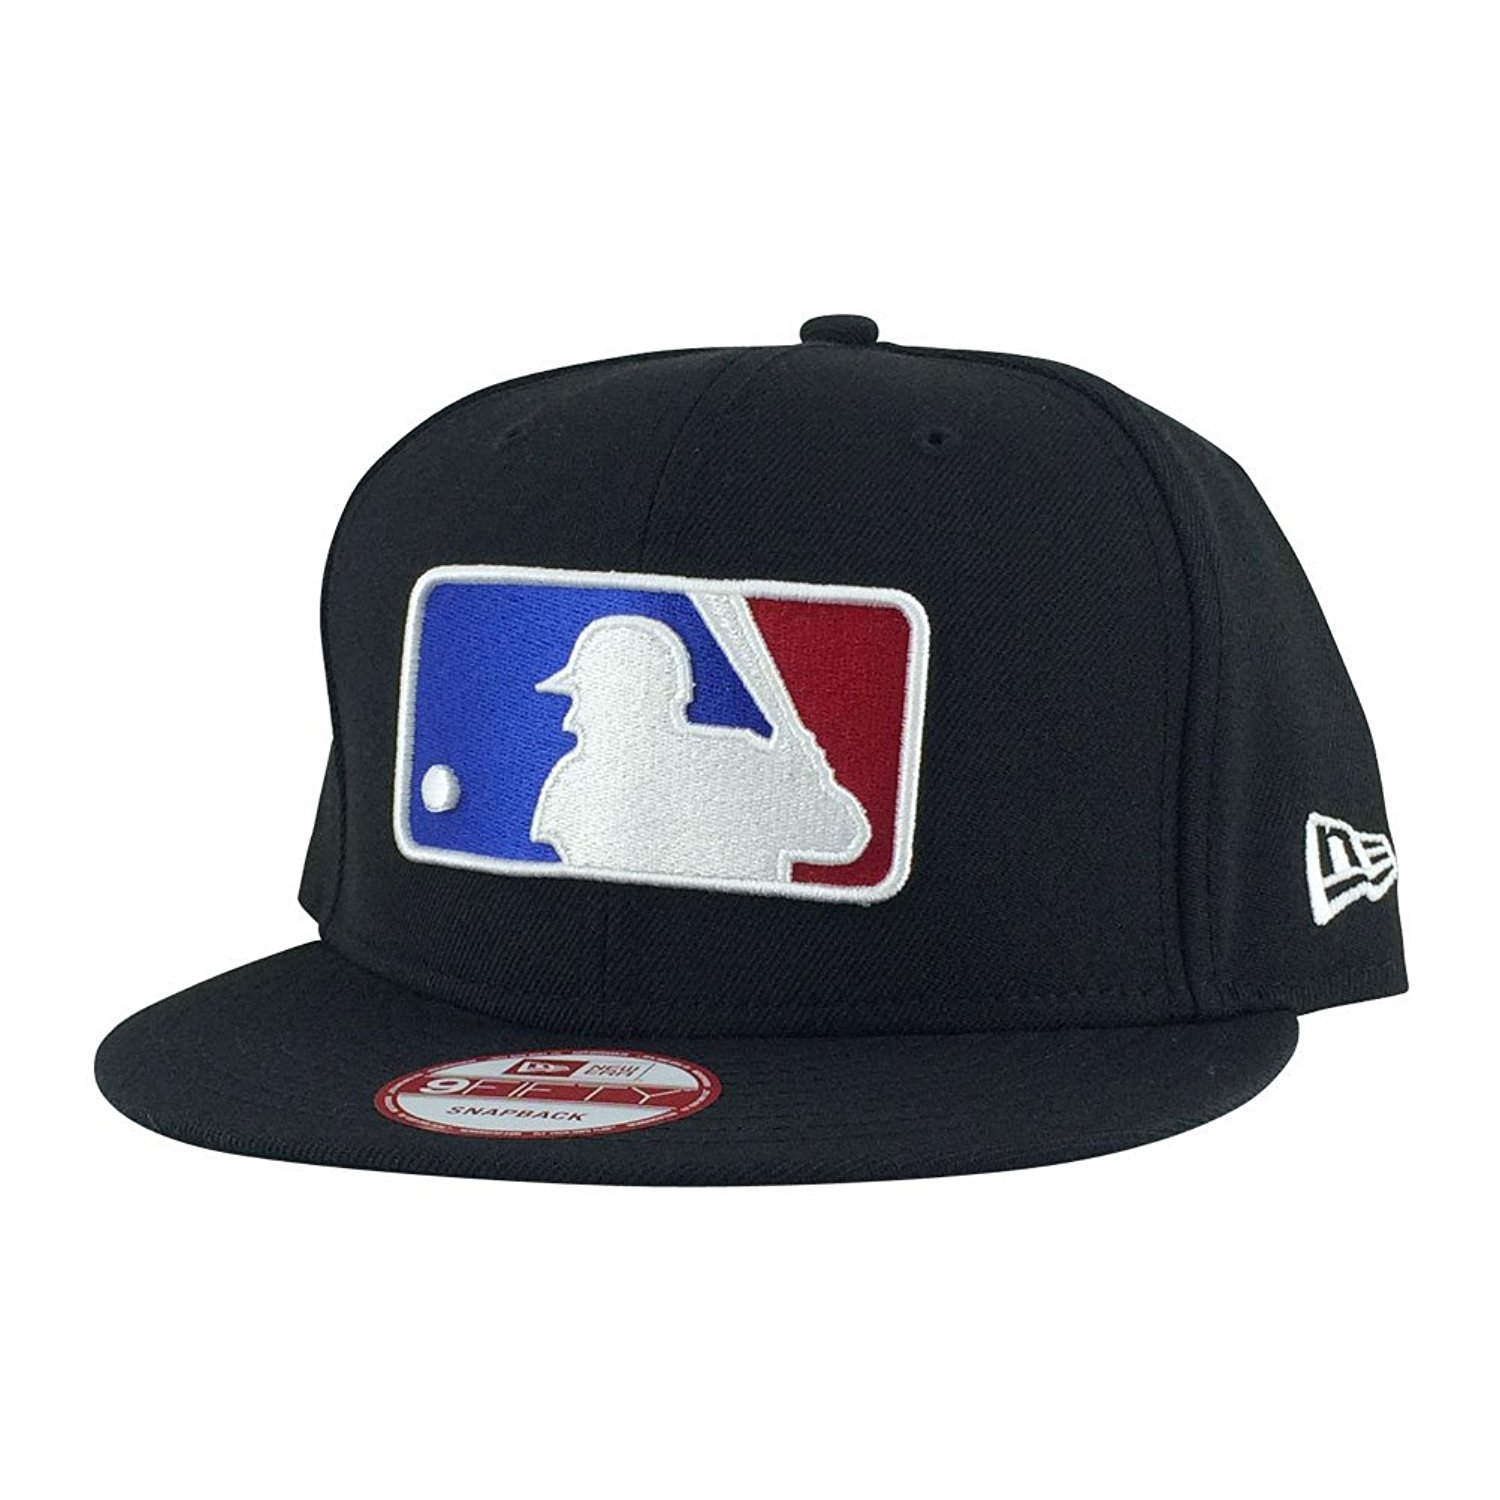 Buy New Era MLB Baseball Umpire Referee Black Xl Logo Man Snapback ... e111e7922d3